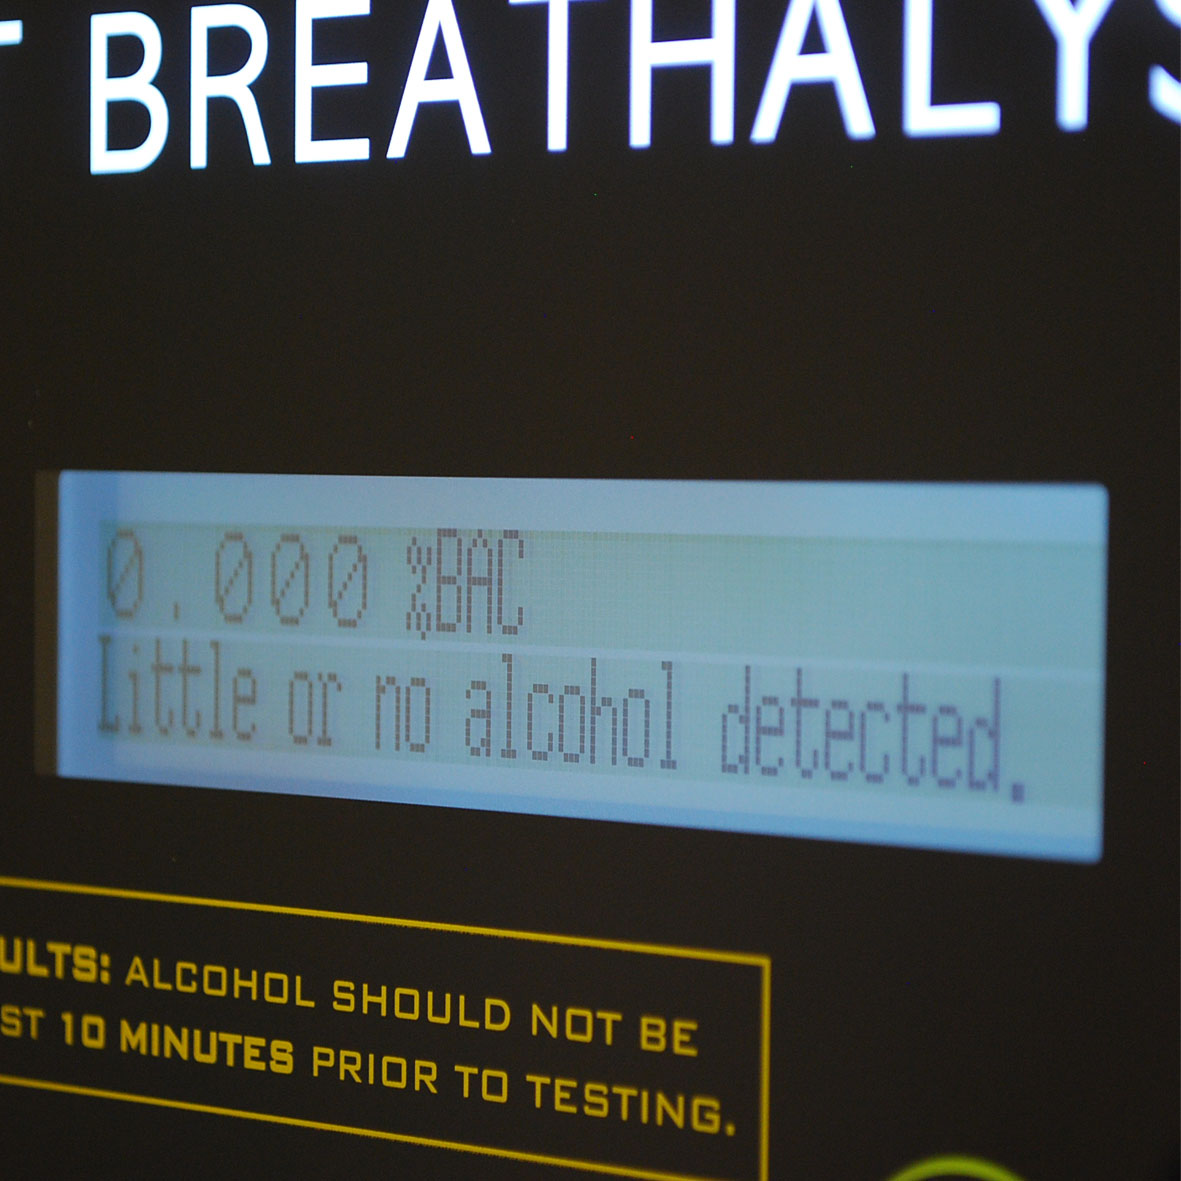 RBT Plus display.jpg